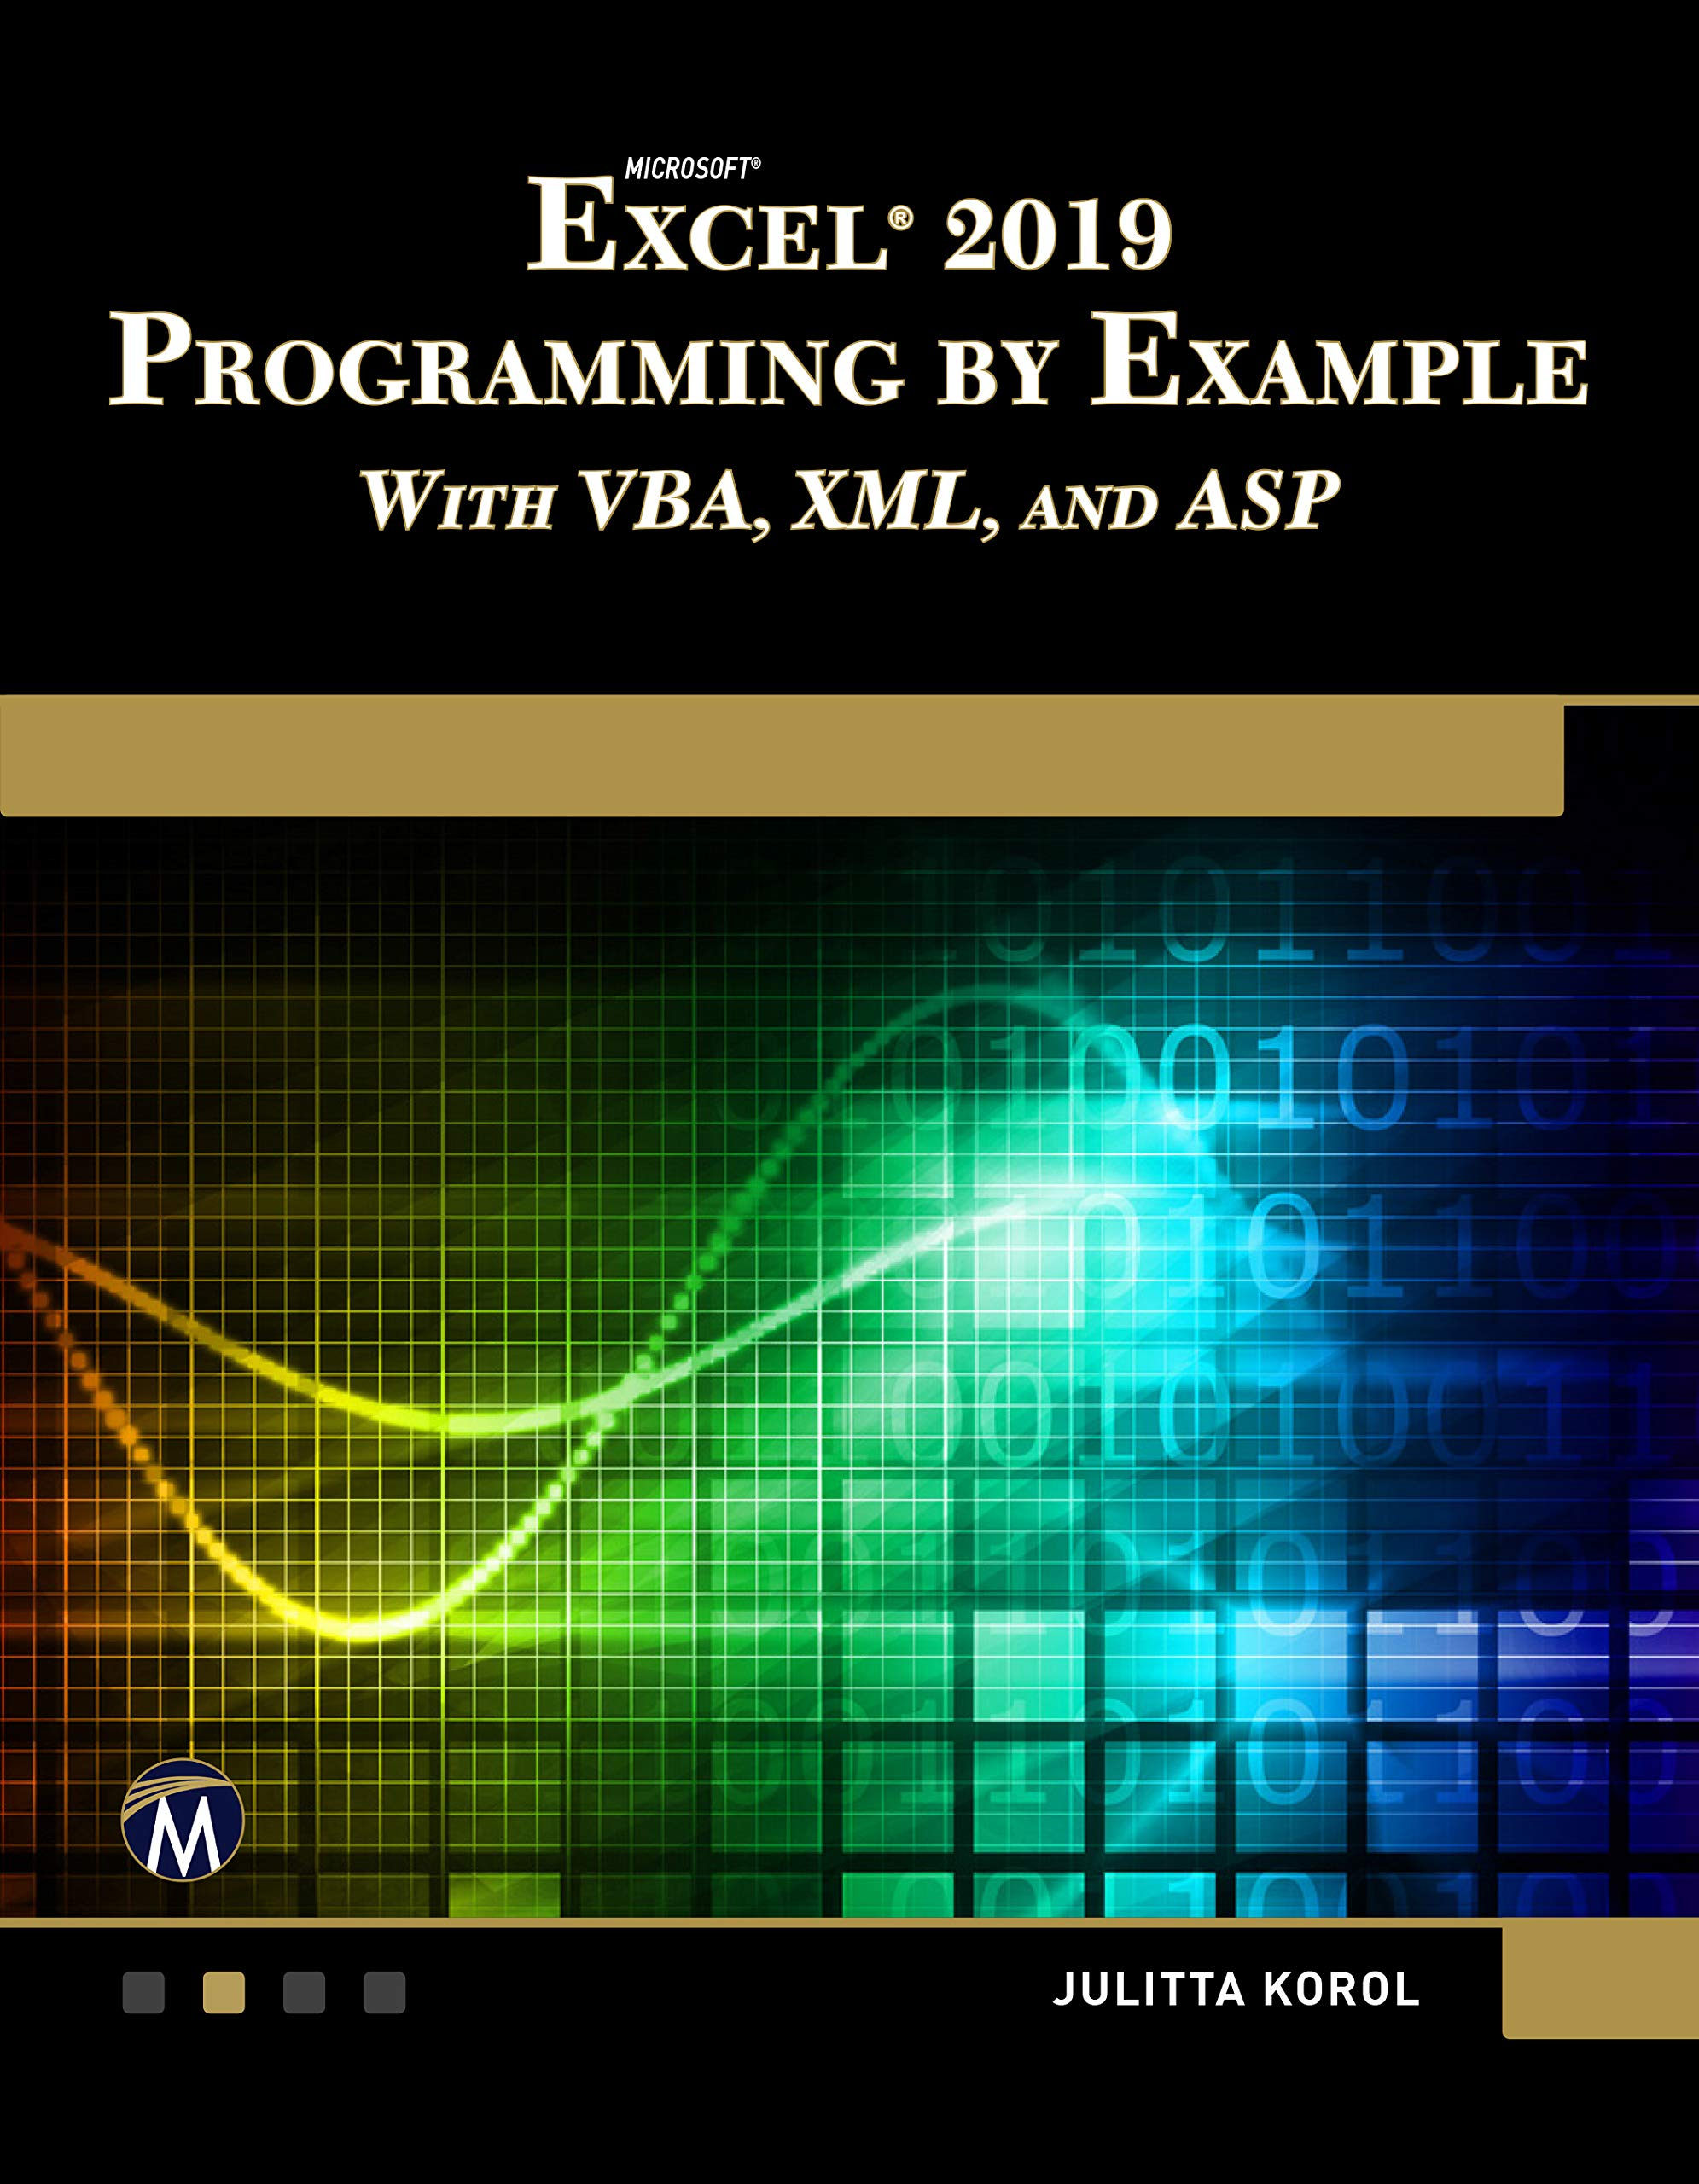 Microsoft Excel 2019 Programming by Example with VBA, XML